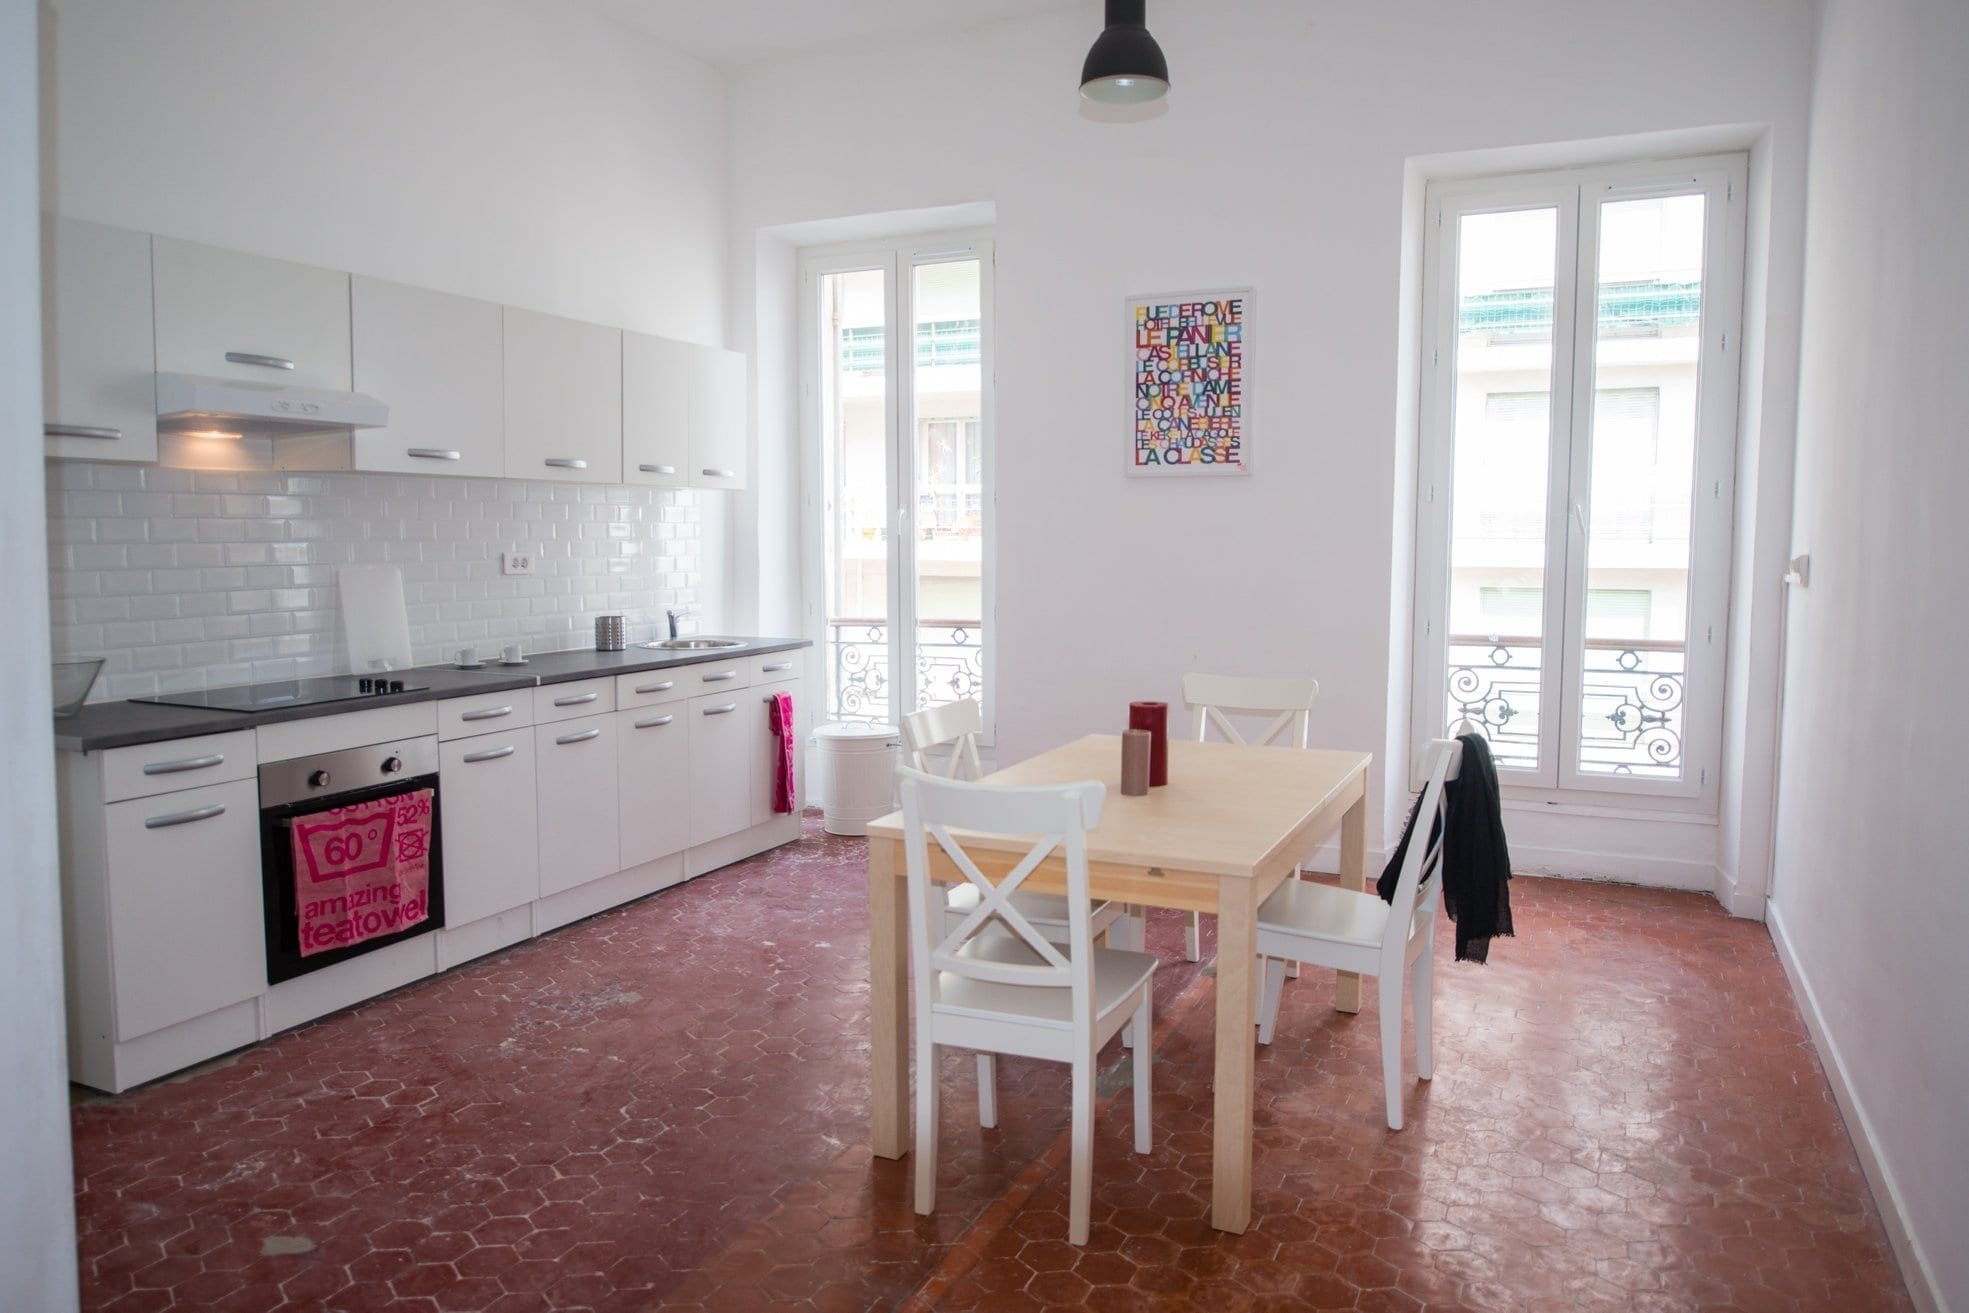 A beautiful kitchen in one of our flatshare